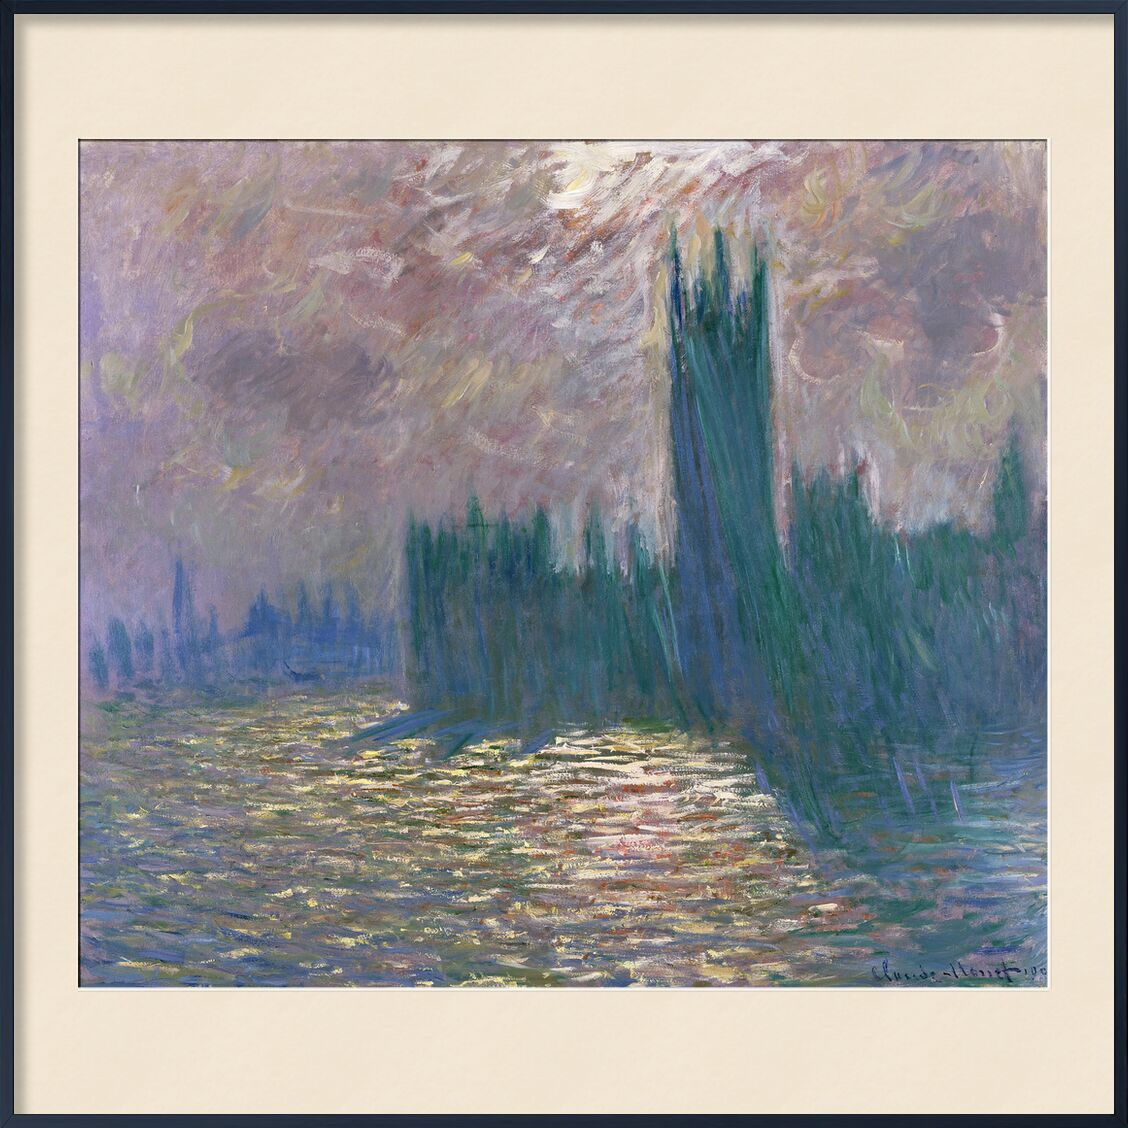 Houses of Parliament, London - CLAUDE MONET 1905 from Aux Beaux-Arts, Prodi Art, River, london, Thames, capital, parliament, parliament of London, CLAUDE MONE